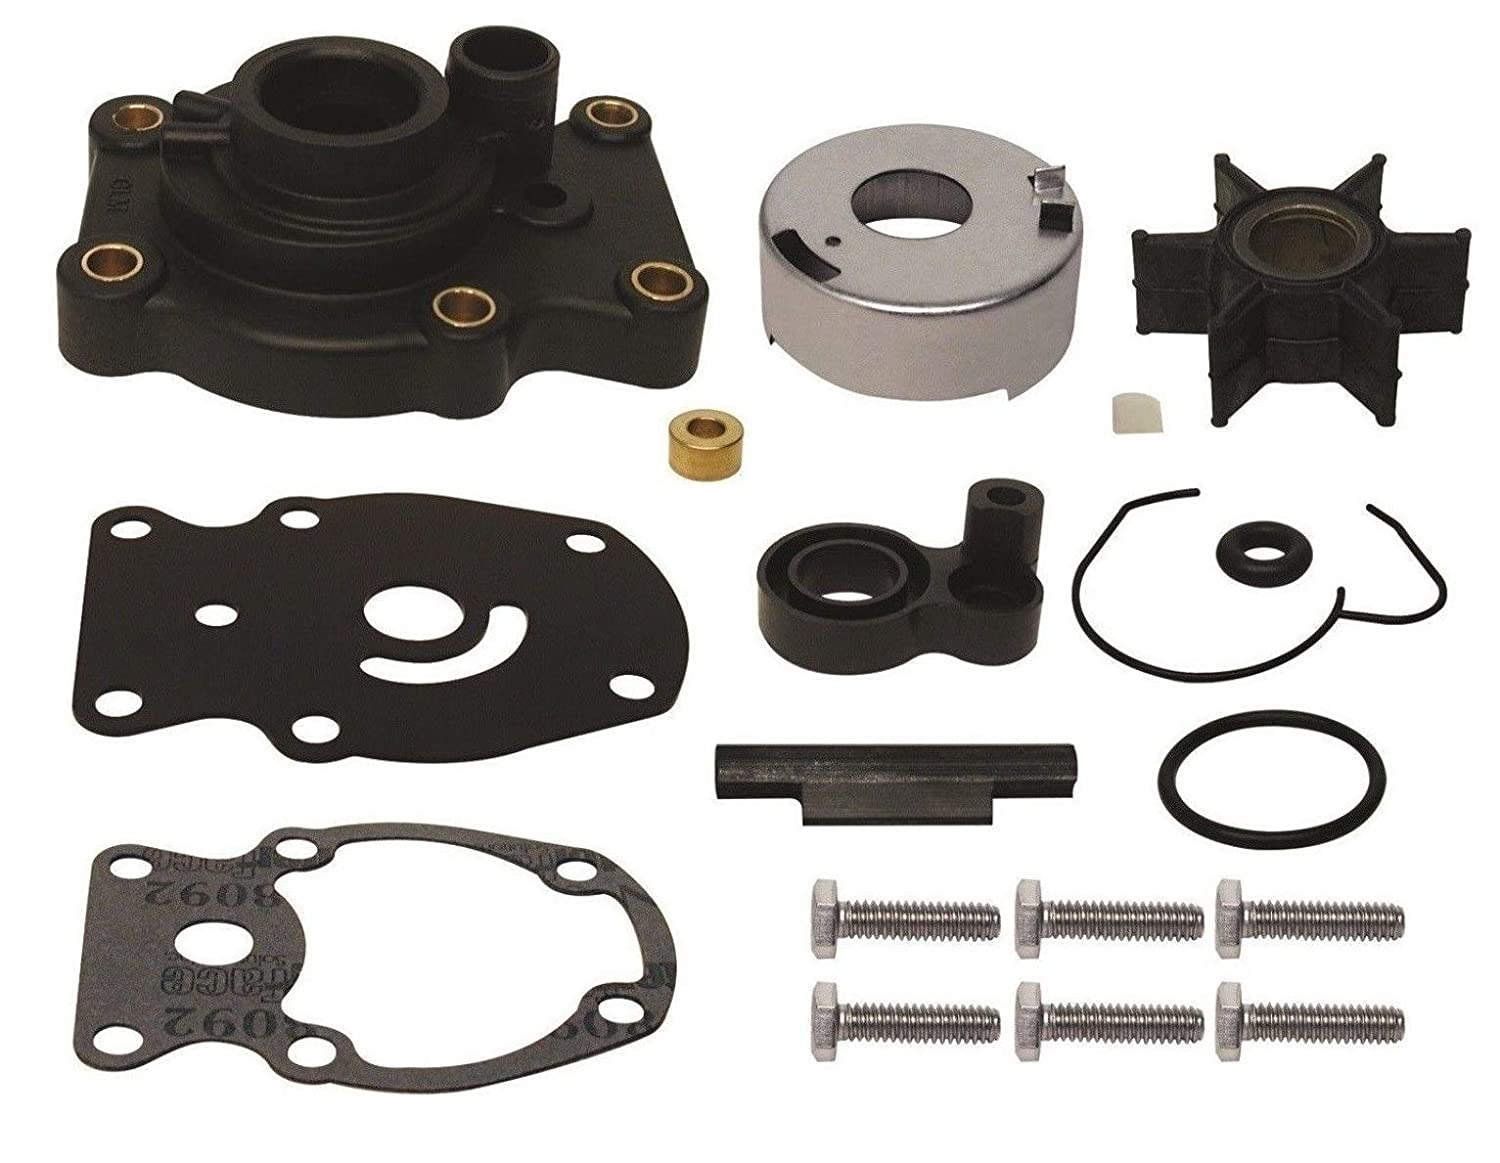 8 Hp Replaces 396644 Read Item Description for Exact Applications GLM Water Pump Impeller Kit for Johnson Evinrude Outboard 4 4.5 5 6